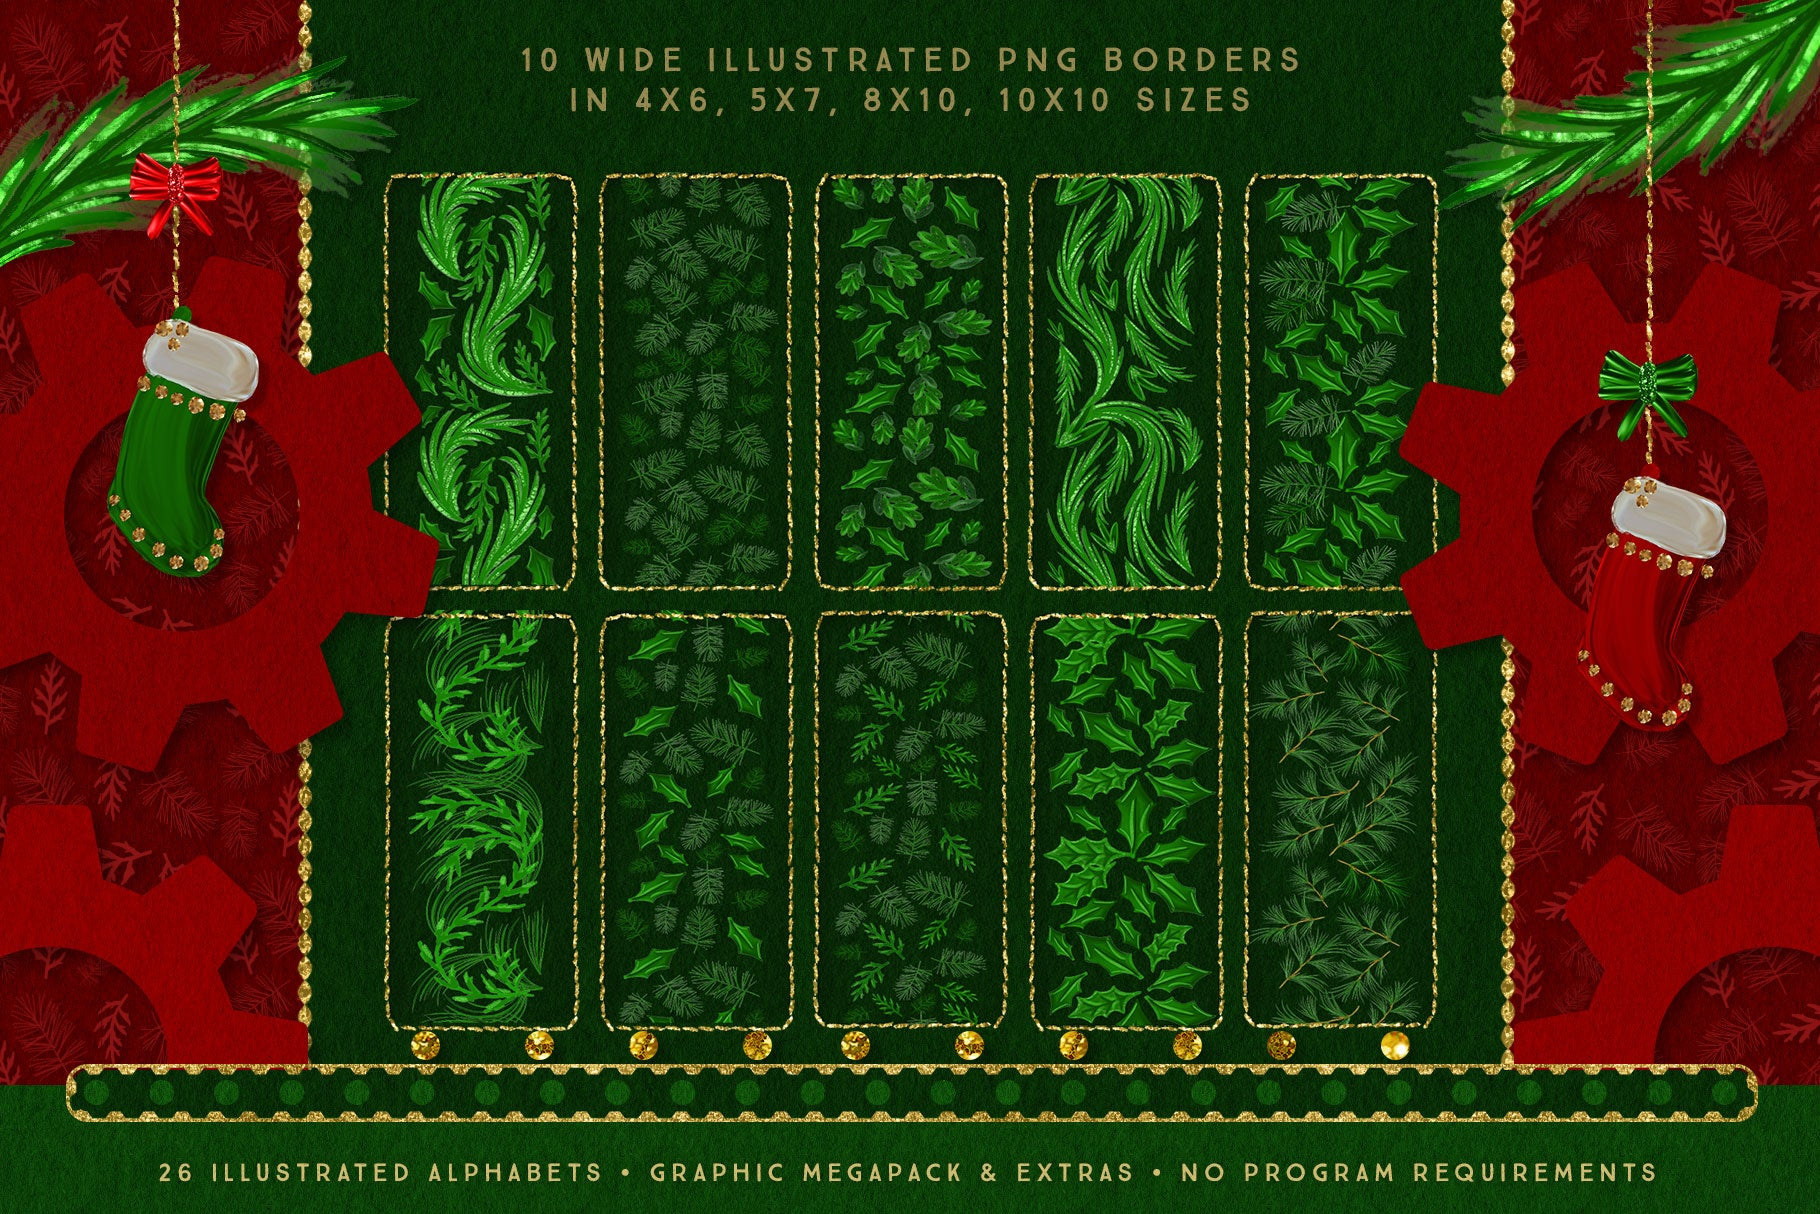 Luxe Christmas & Holiday Greenery Alphabets: PNG graphic greenery borders